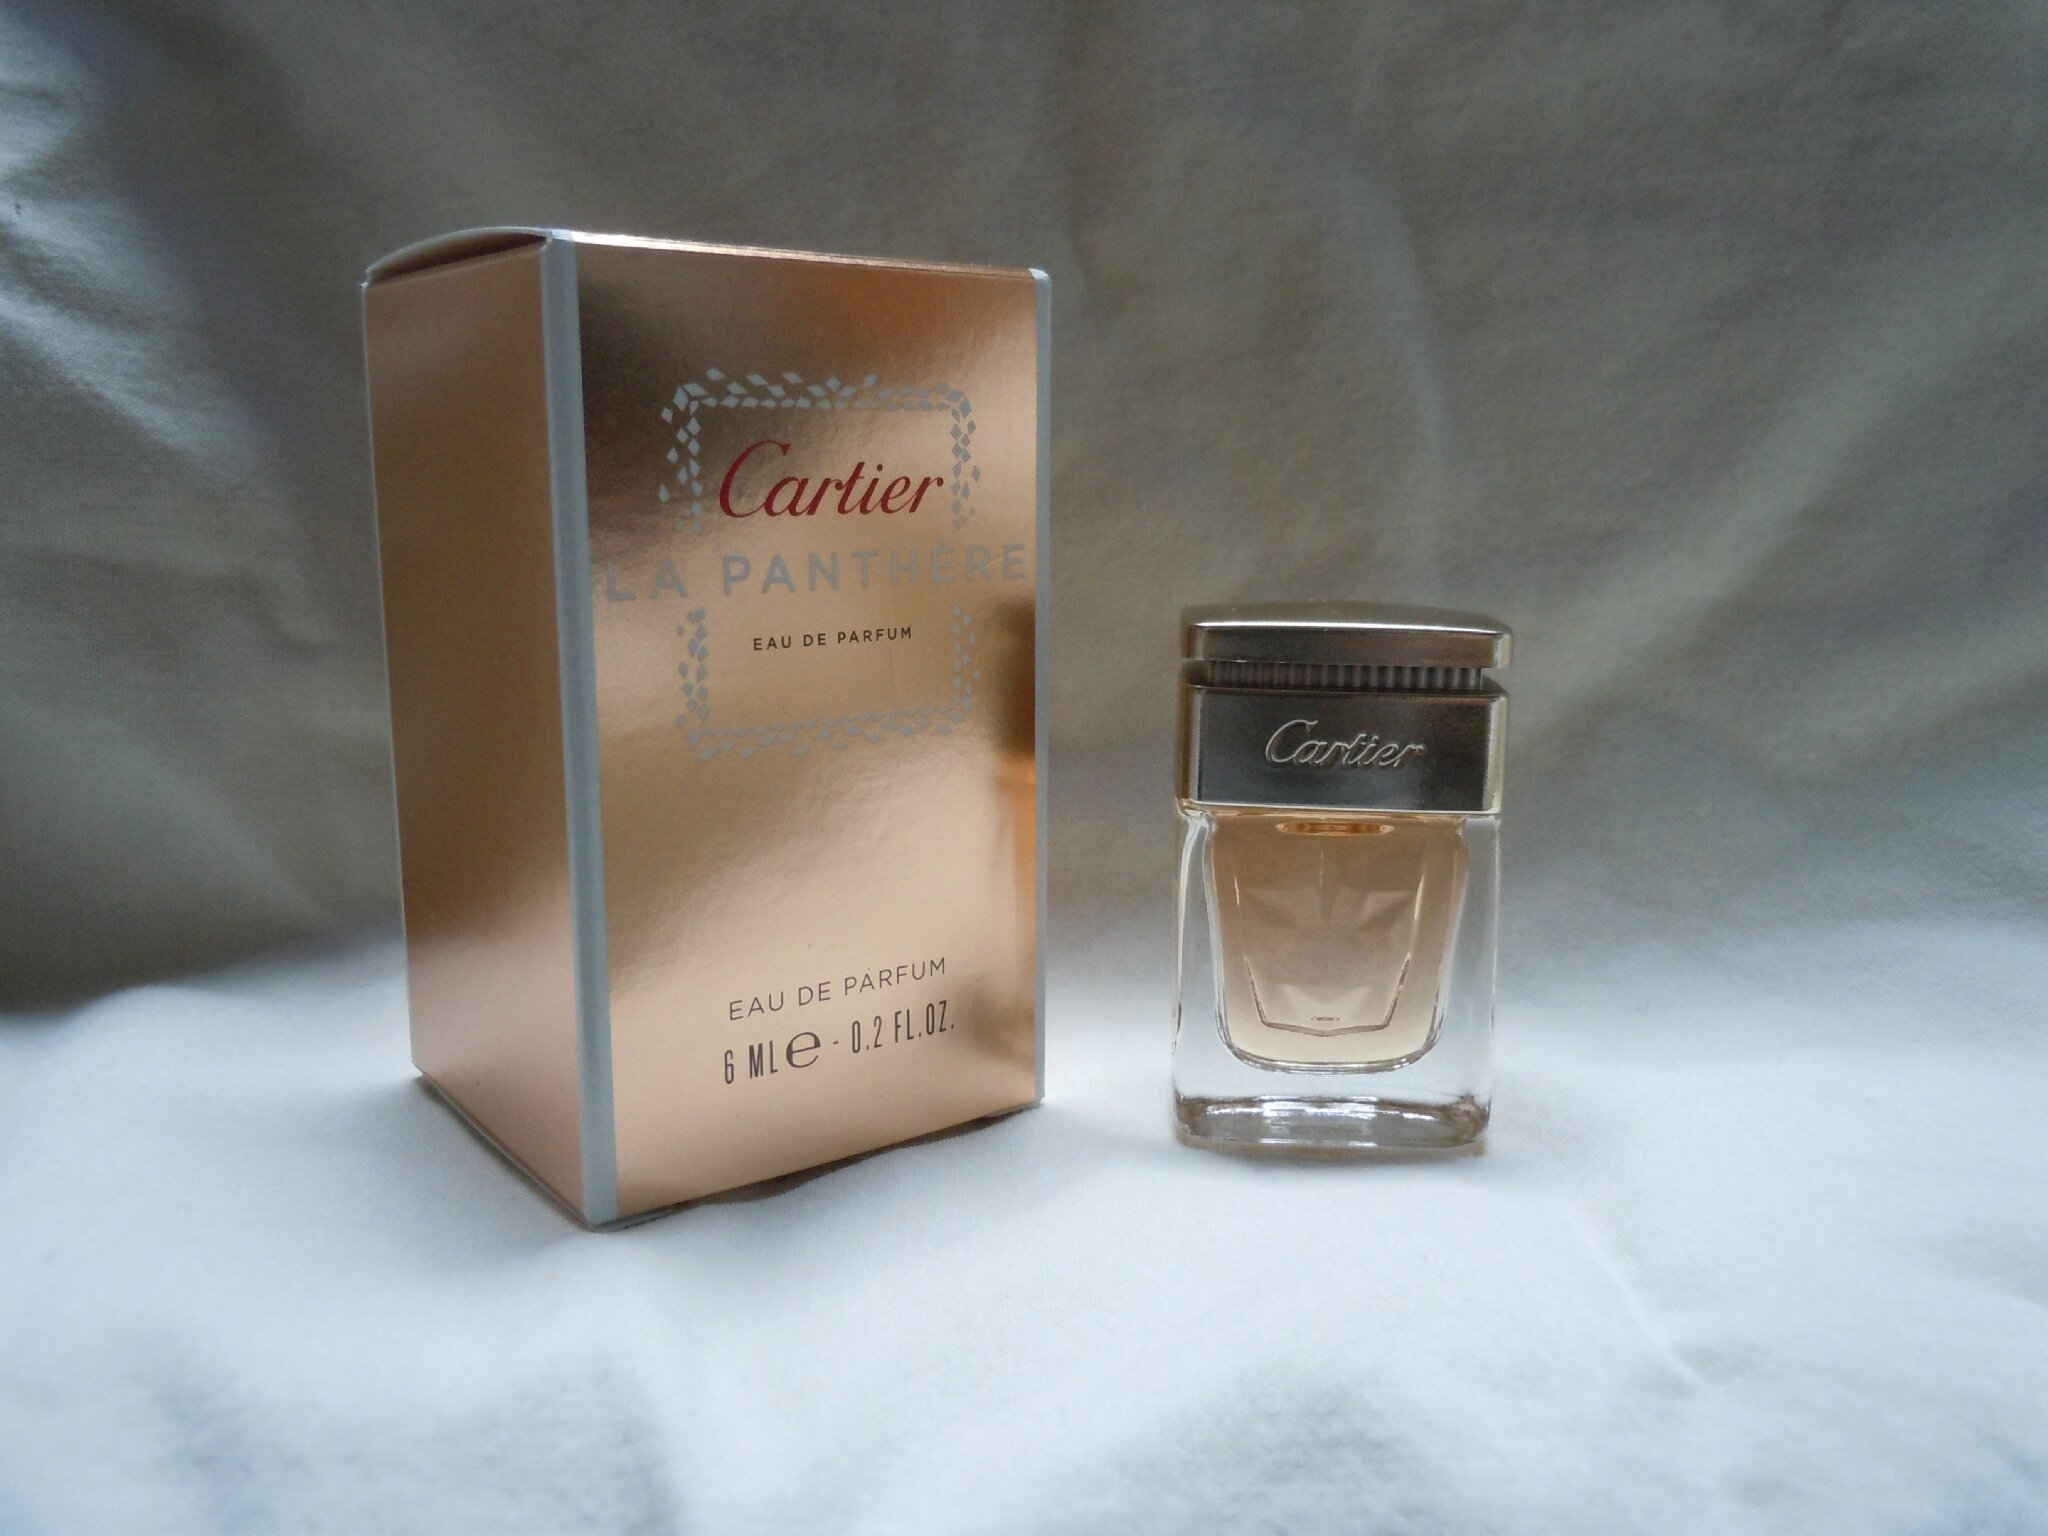 CARTIER-LAPANTHERE